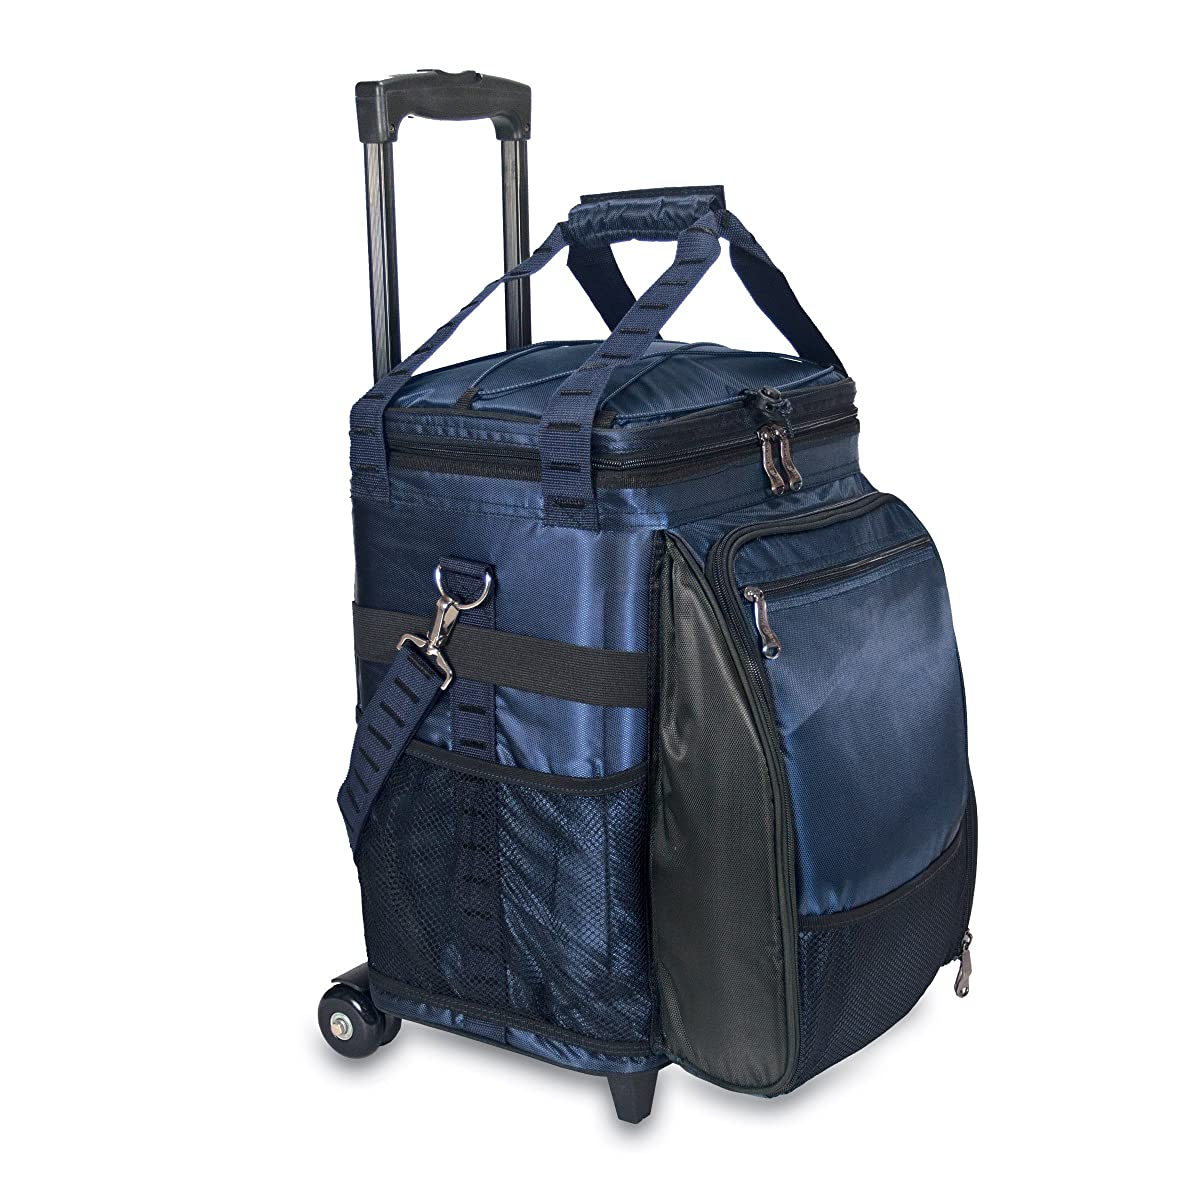 Picnic Time Avalanche Deluxe Picnic Cooler on Wheels with Picnic Service for 4, Navy